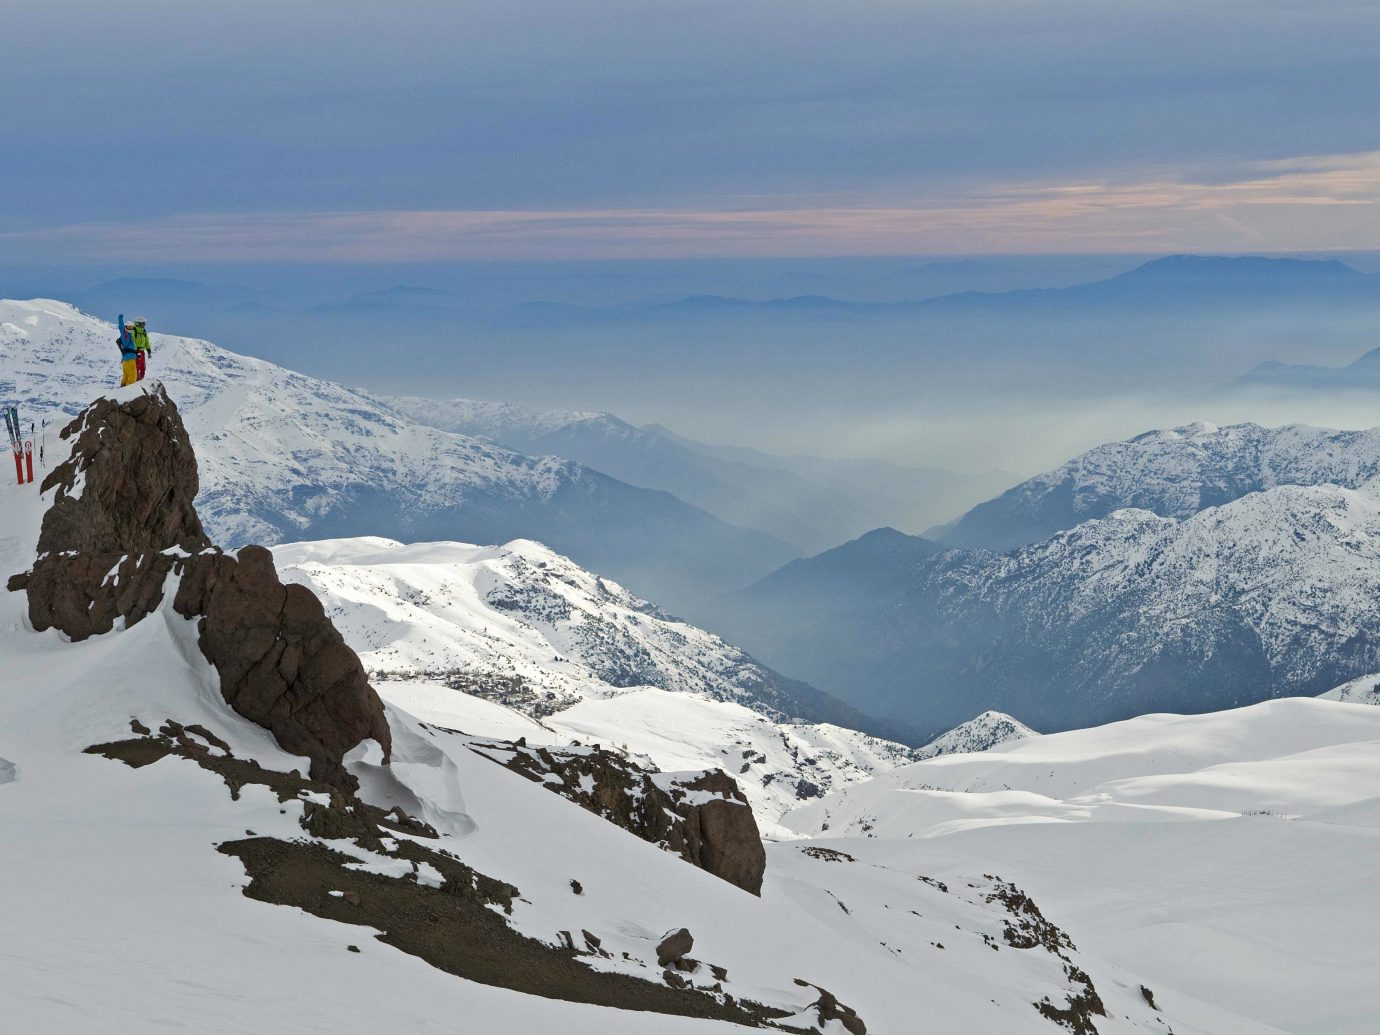 Where to go in July, Valle Nevado, Chile